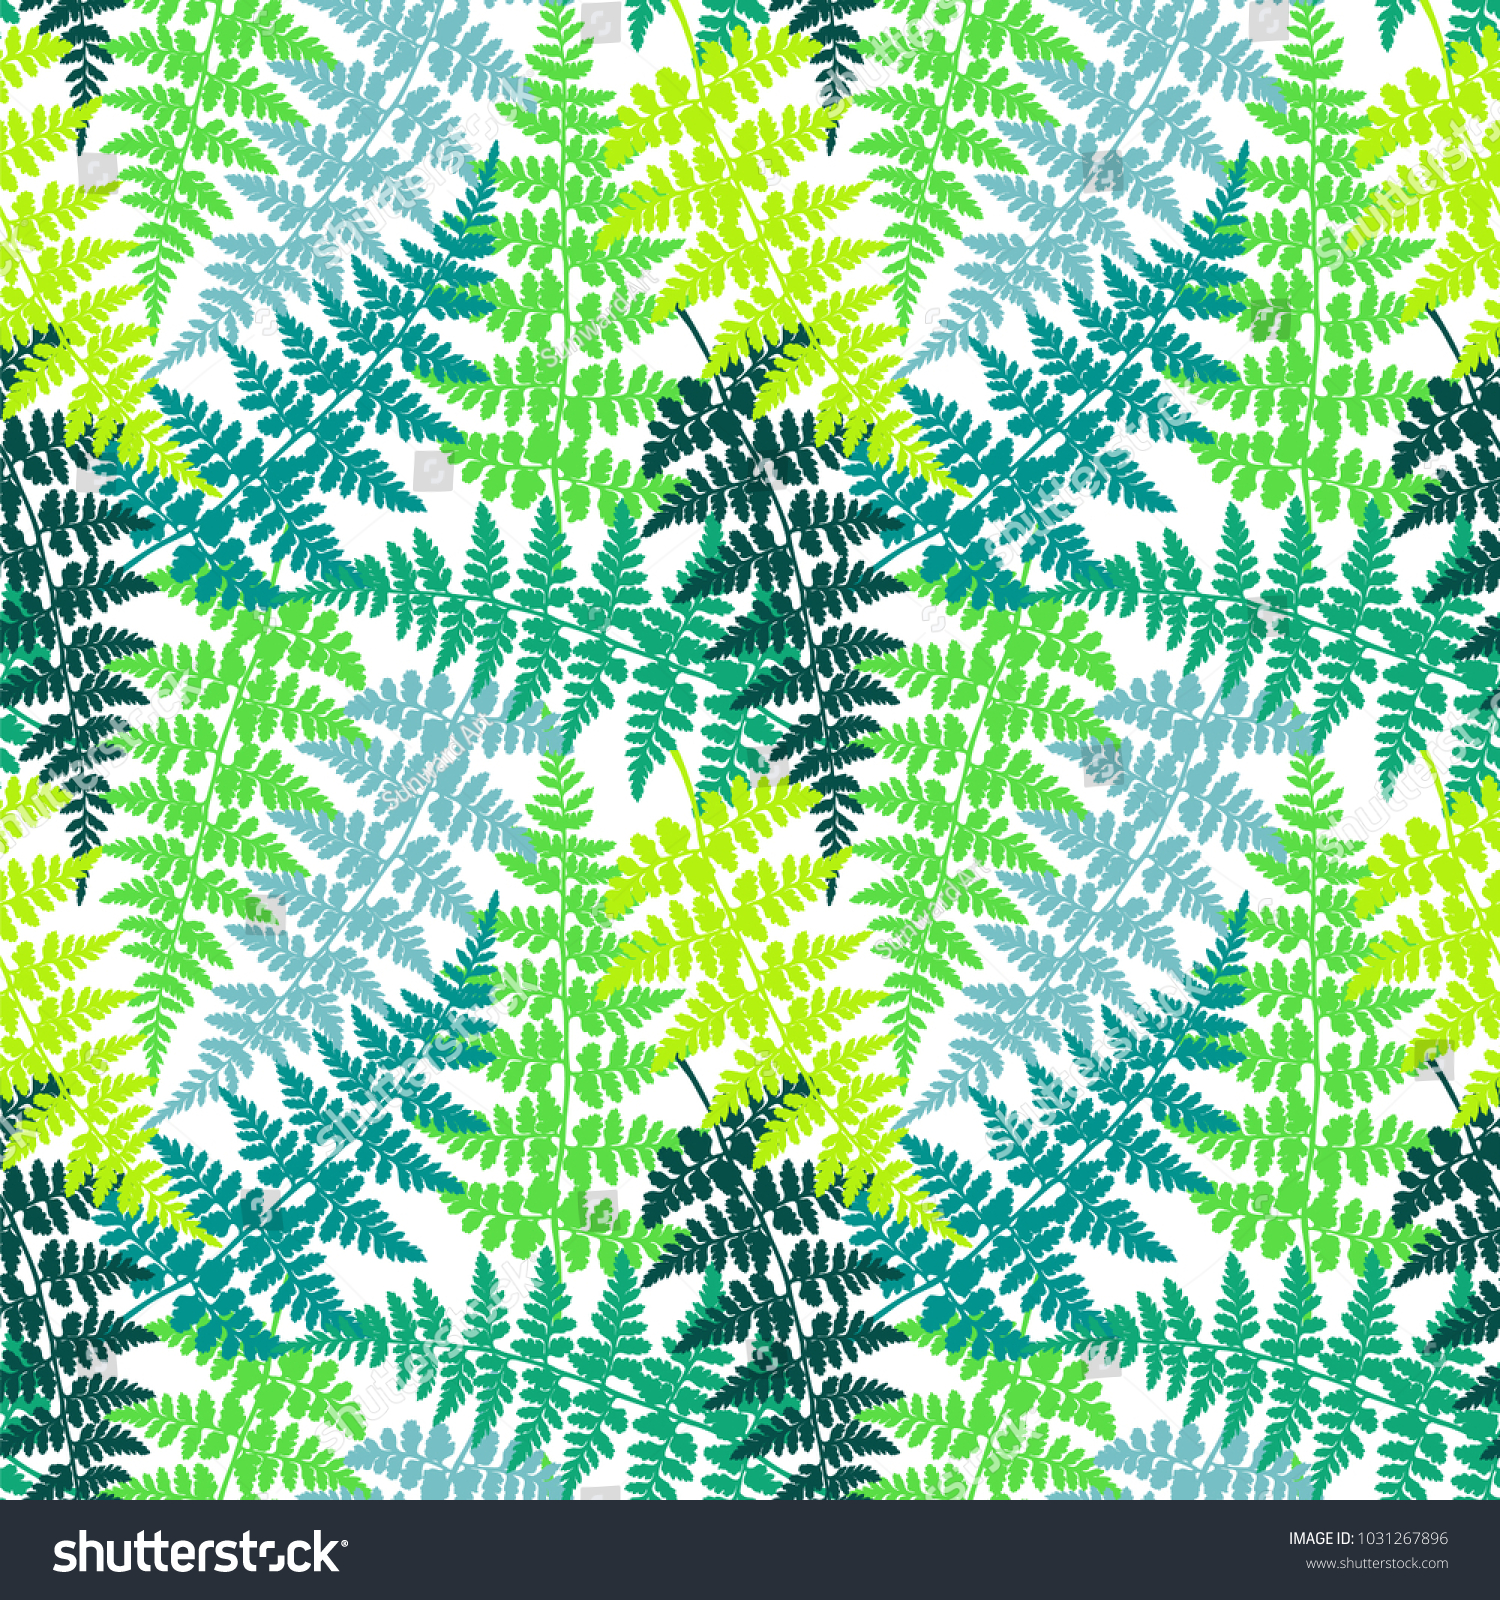 Fern Frond Herbs Tropical Forest Plant Stock Vector (Royalty Free ...